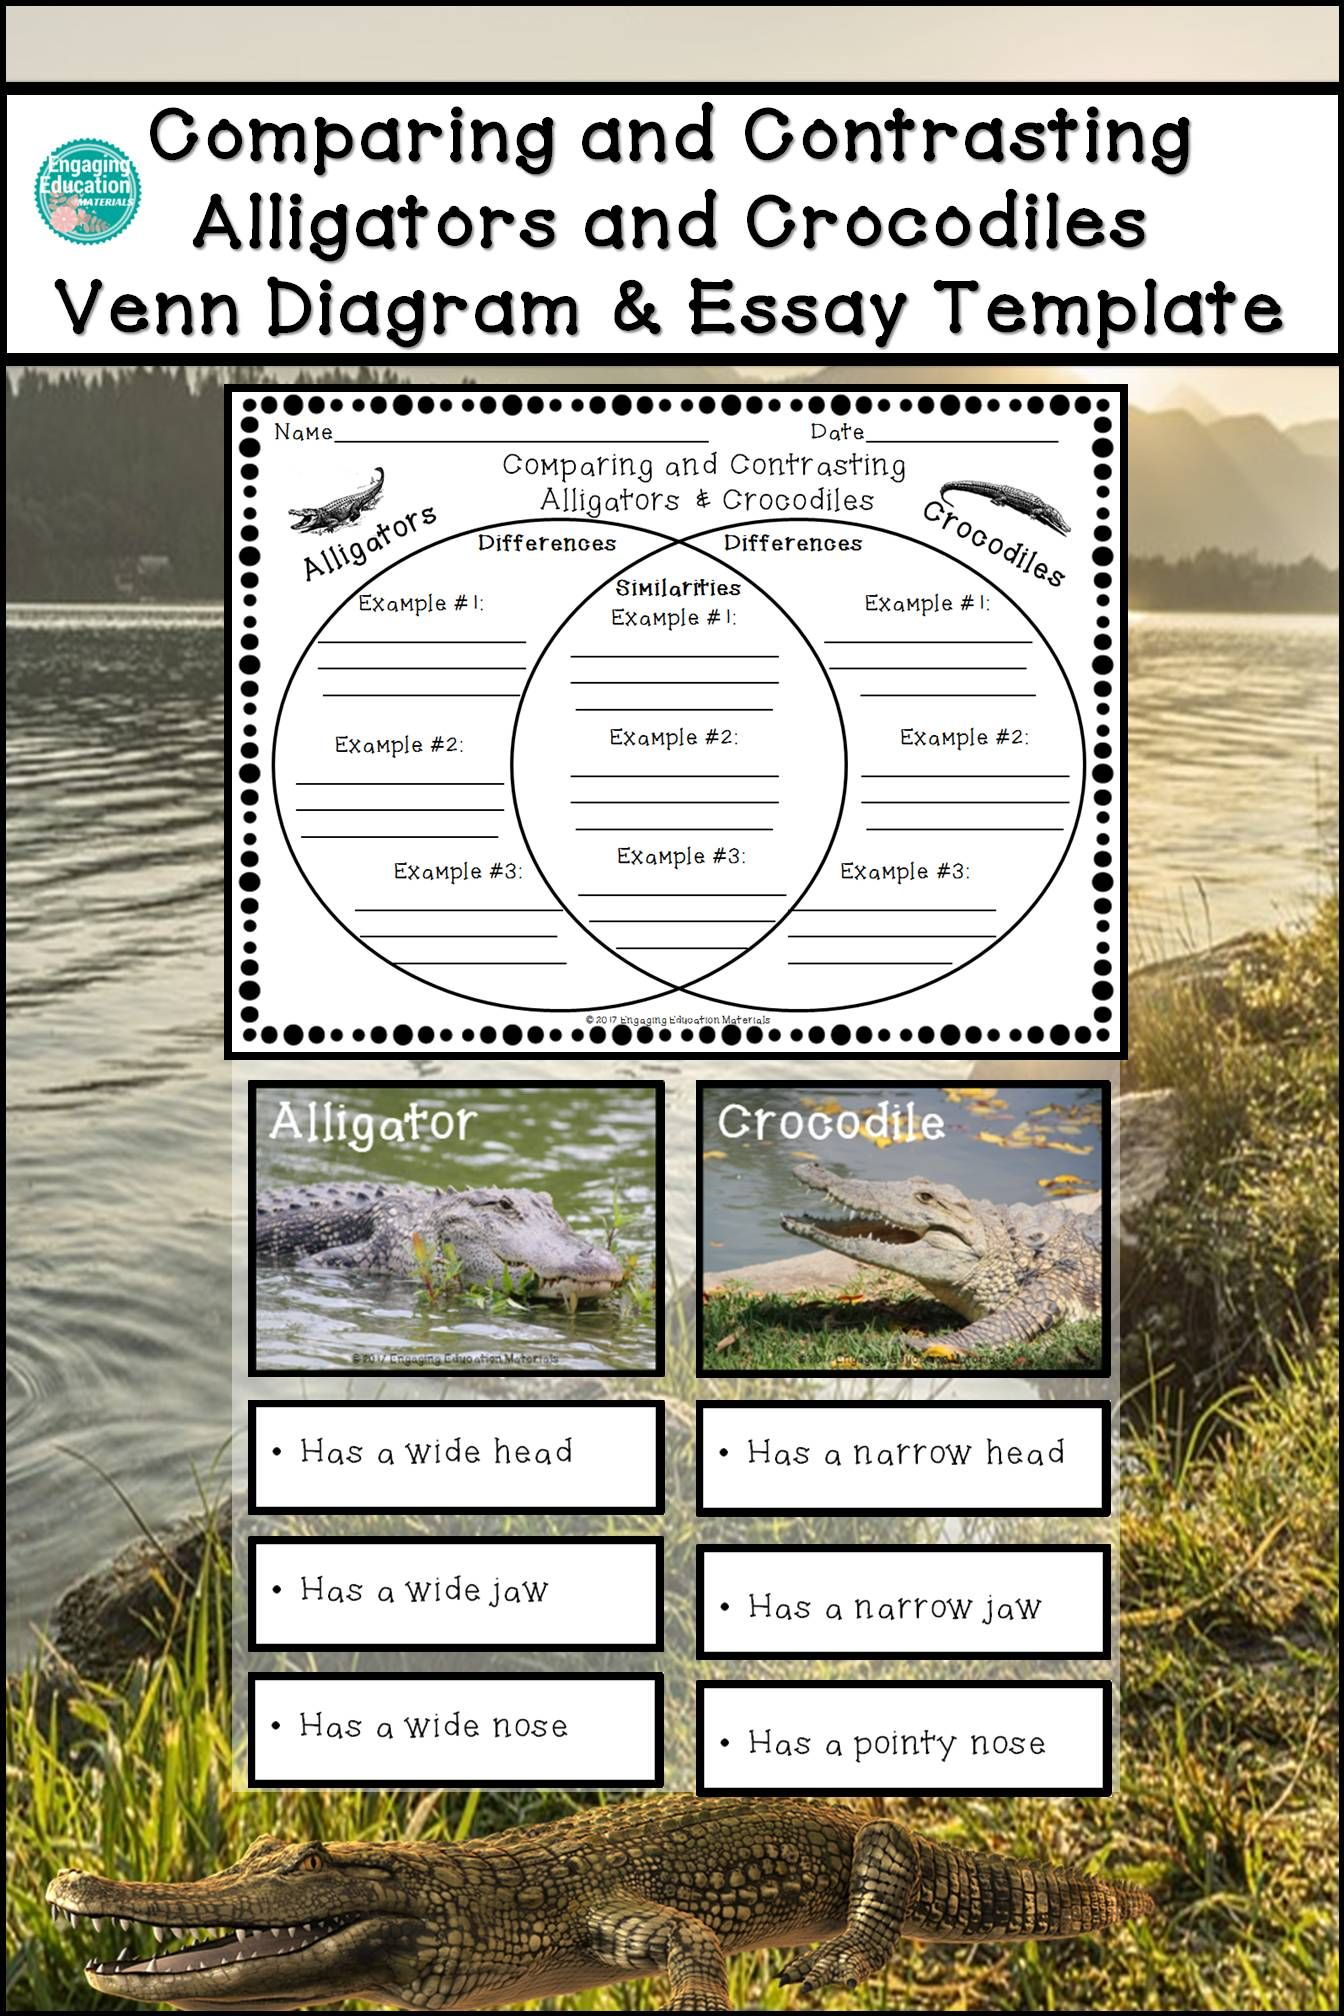 Comparing and contrasting alligators and crocodiles venn alligators and crocodiles students compare and contrast alligators and crocodiles by sorting 9 description cards and completing a venn diagram pooptronica Images